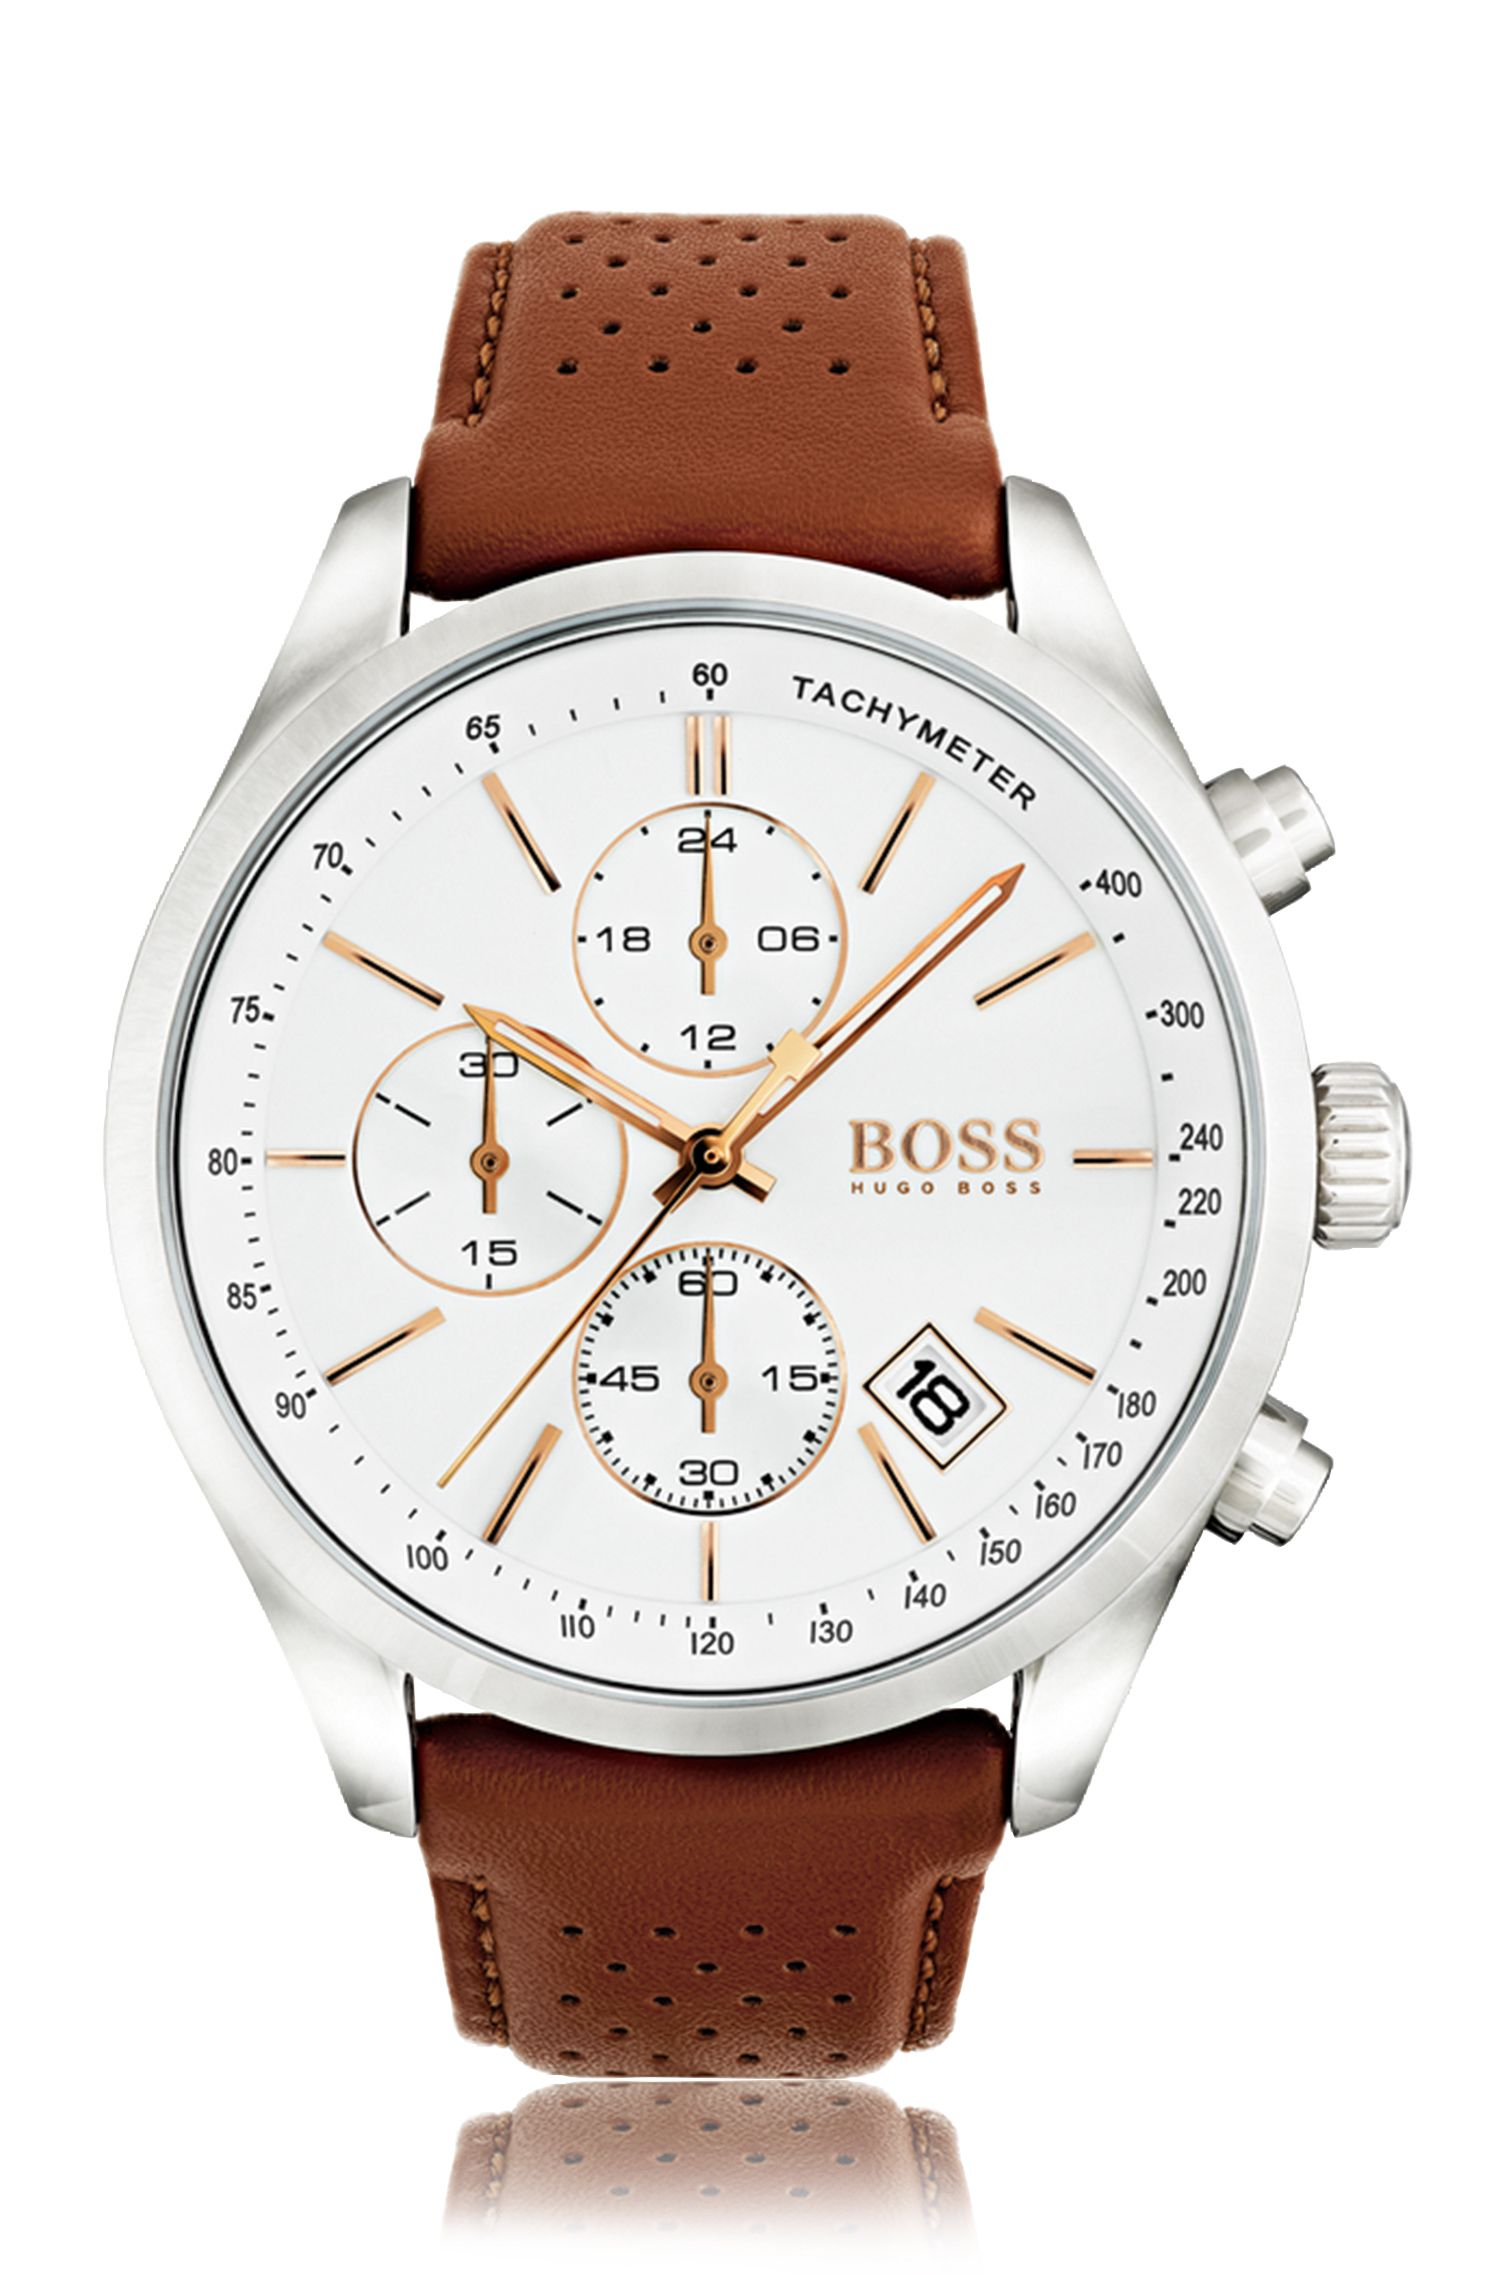 Polished stainless-steel sportswatch with white dial and perforated leather strap